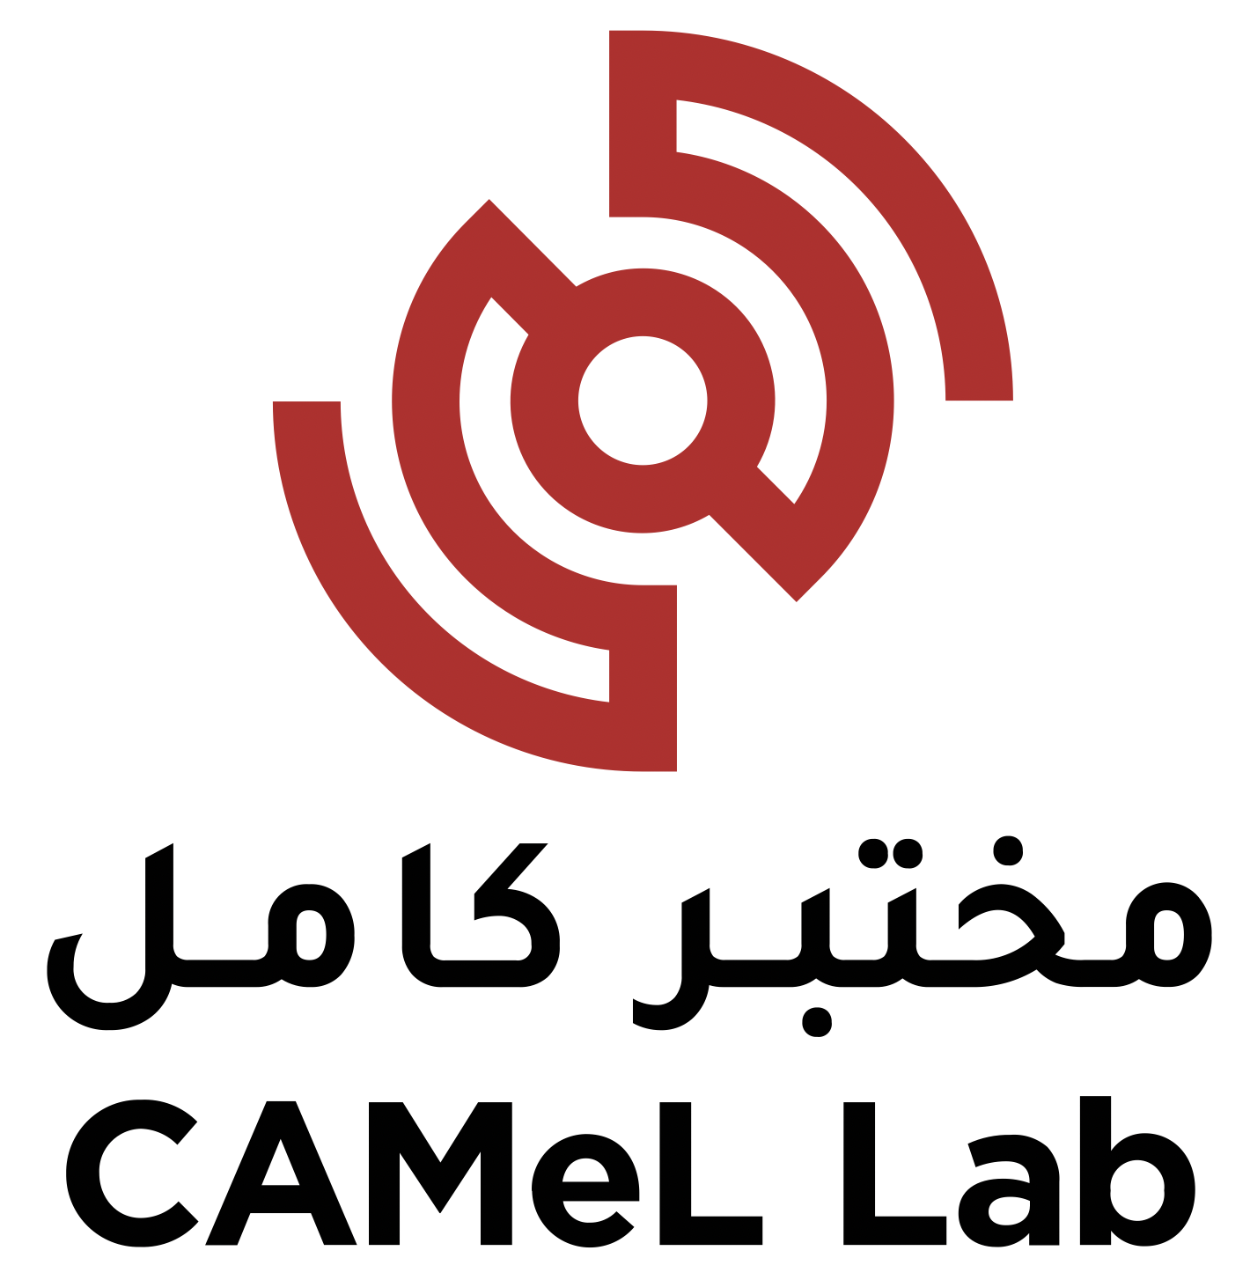 CAMeL Lab (Computational Approaches to Modeling Language) is a research lab at New York University Abu Dhabi established in September 2014. CAMeL's mission is research and education in natural language processing, computational linguistics, and data science.